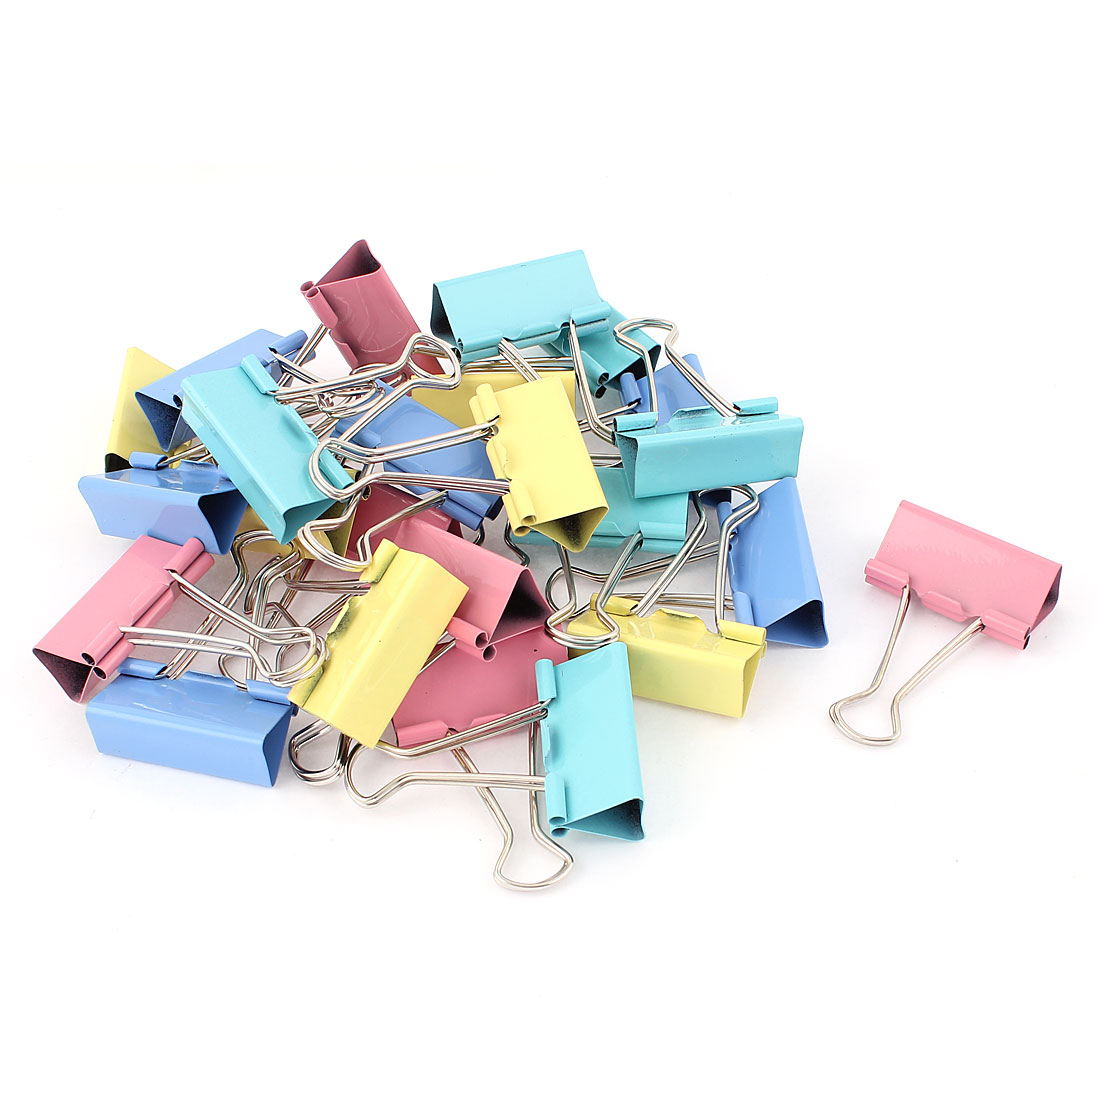 School Office Document Organize 41mm Metal Bookbinding Clamp Binder Clips 24pcs<br><br>Aliexpress